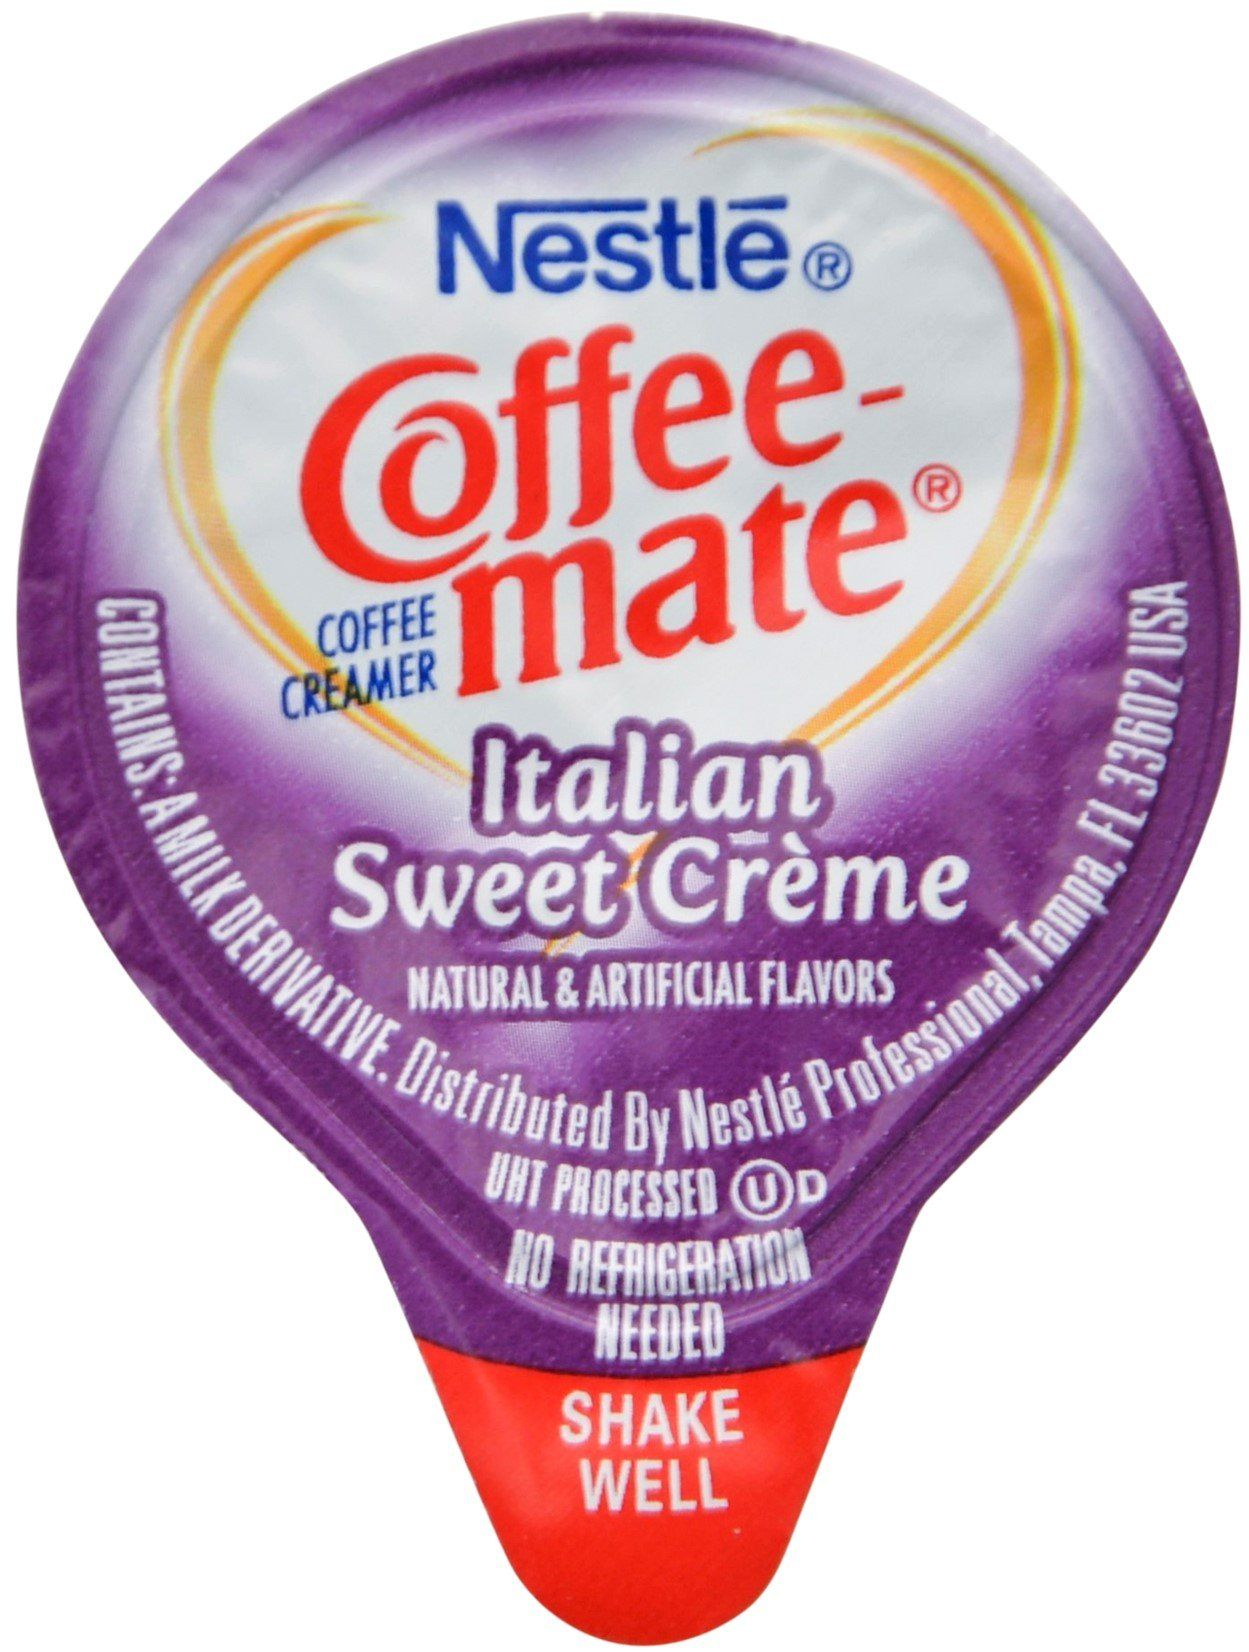 Coffee mate liquid 375oz variety pack 4 flavor 100 count